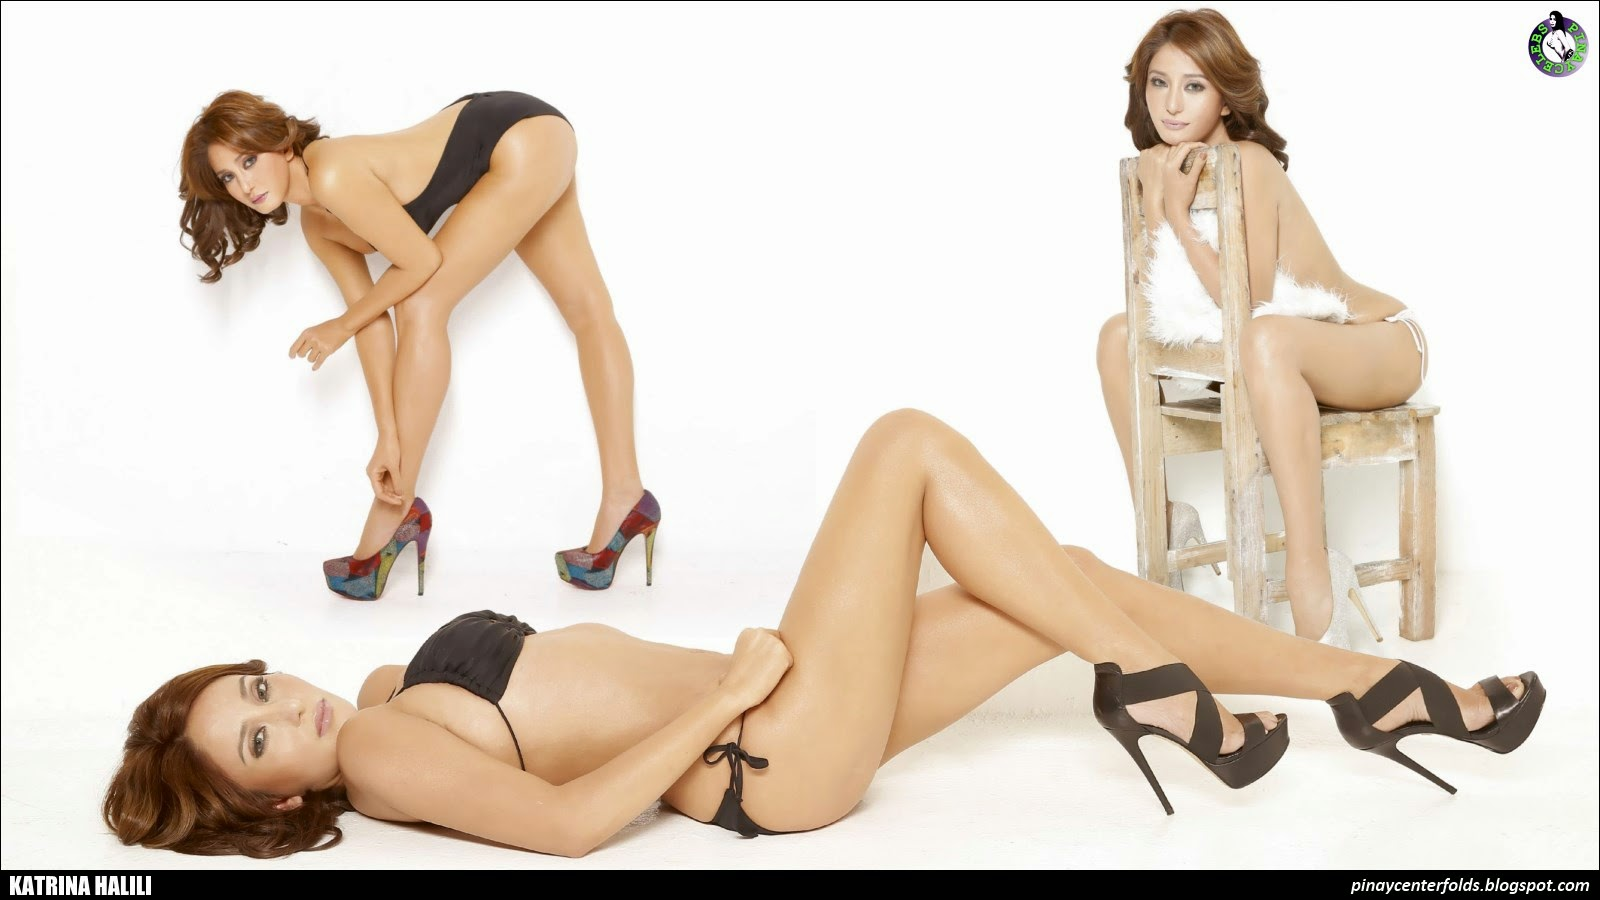 Katrina Halili In FHM Jan 2015 4